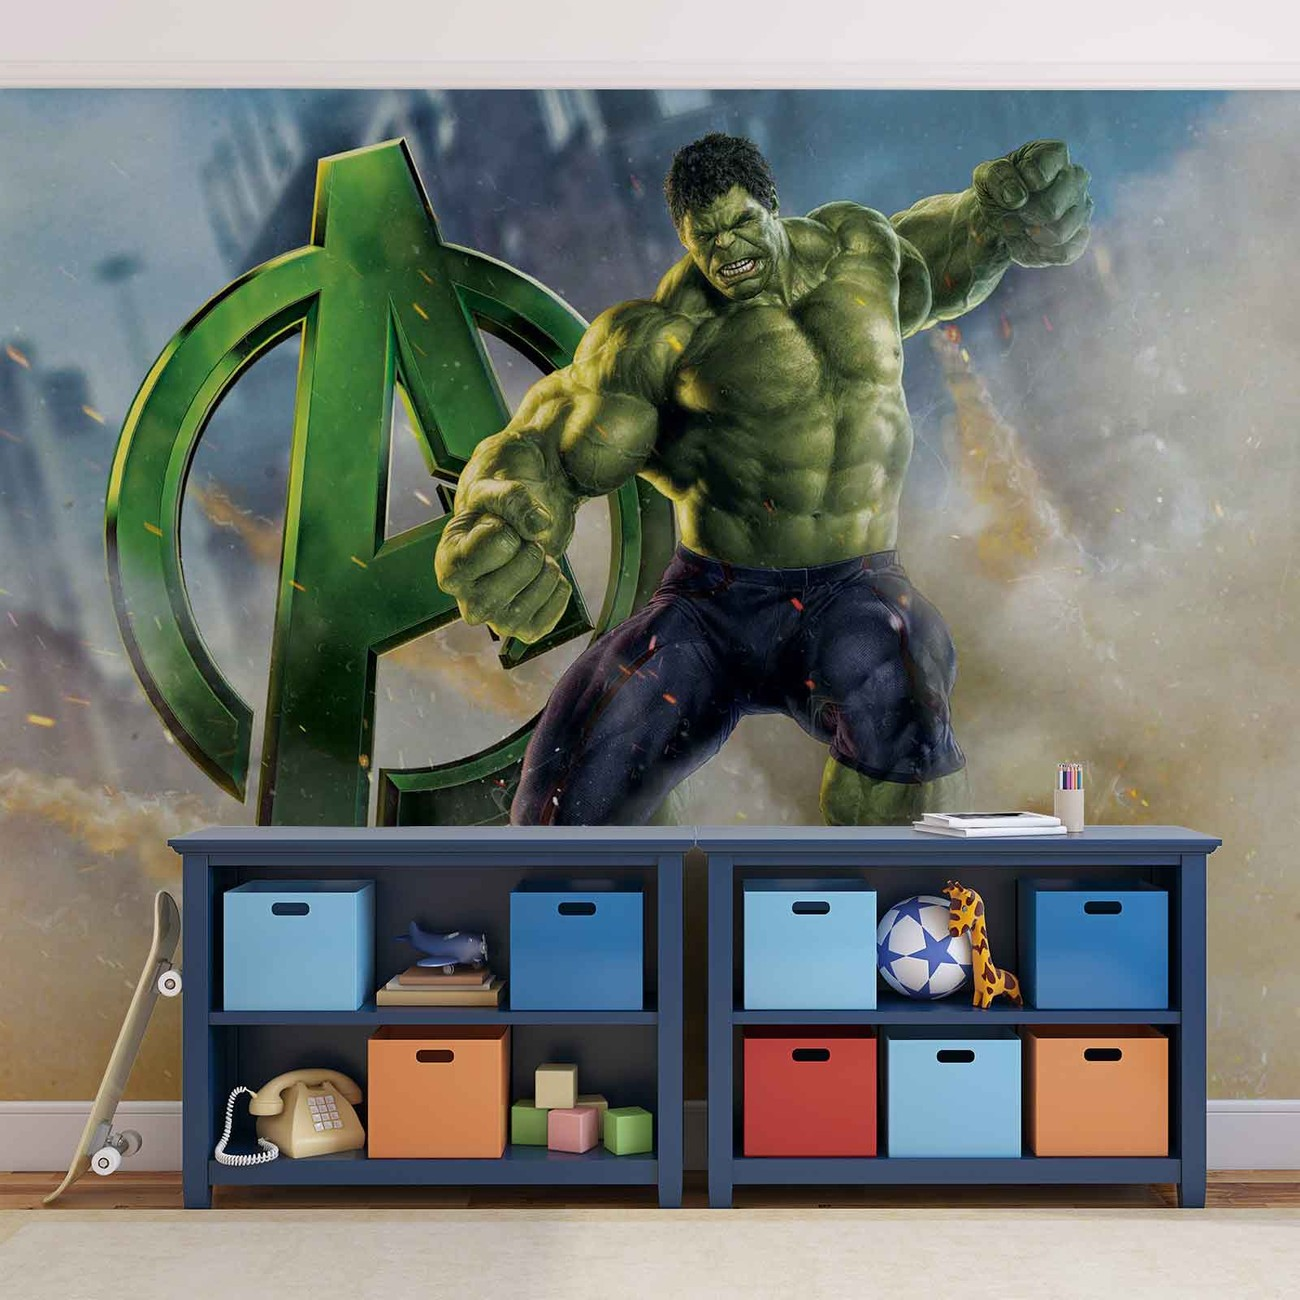 Marvel avengers wall paper mural buy at europosters for Avengers wall mural uk